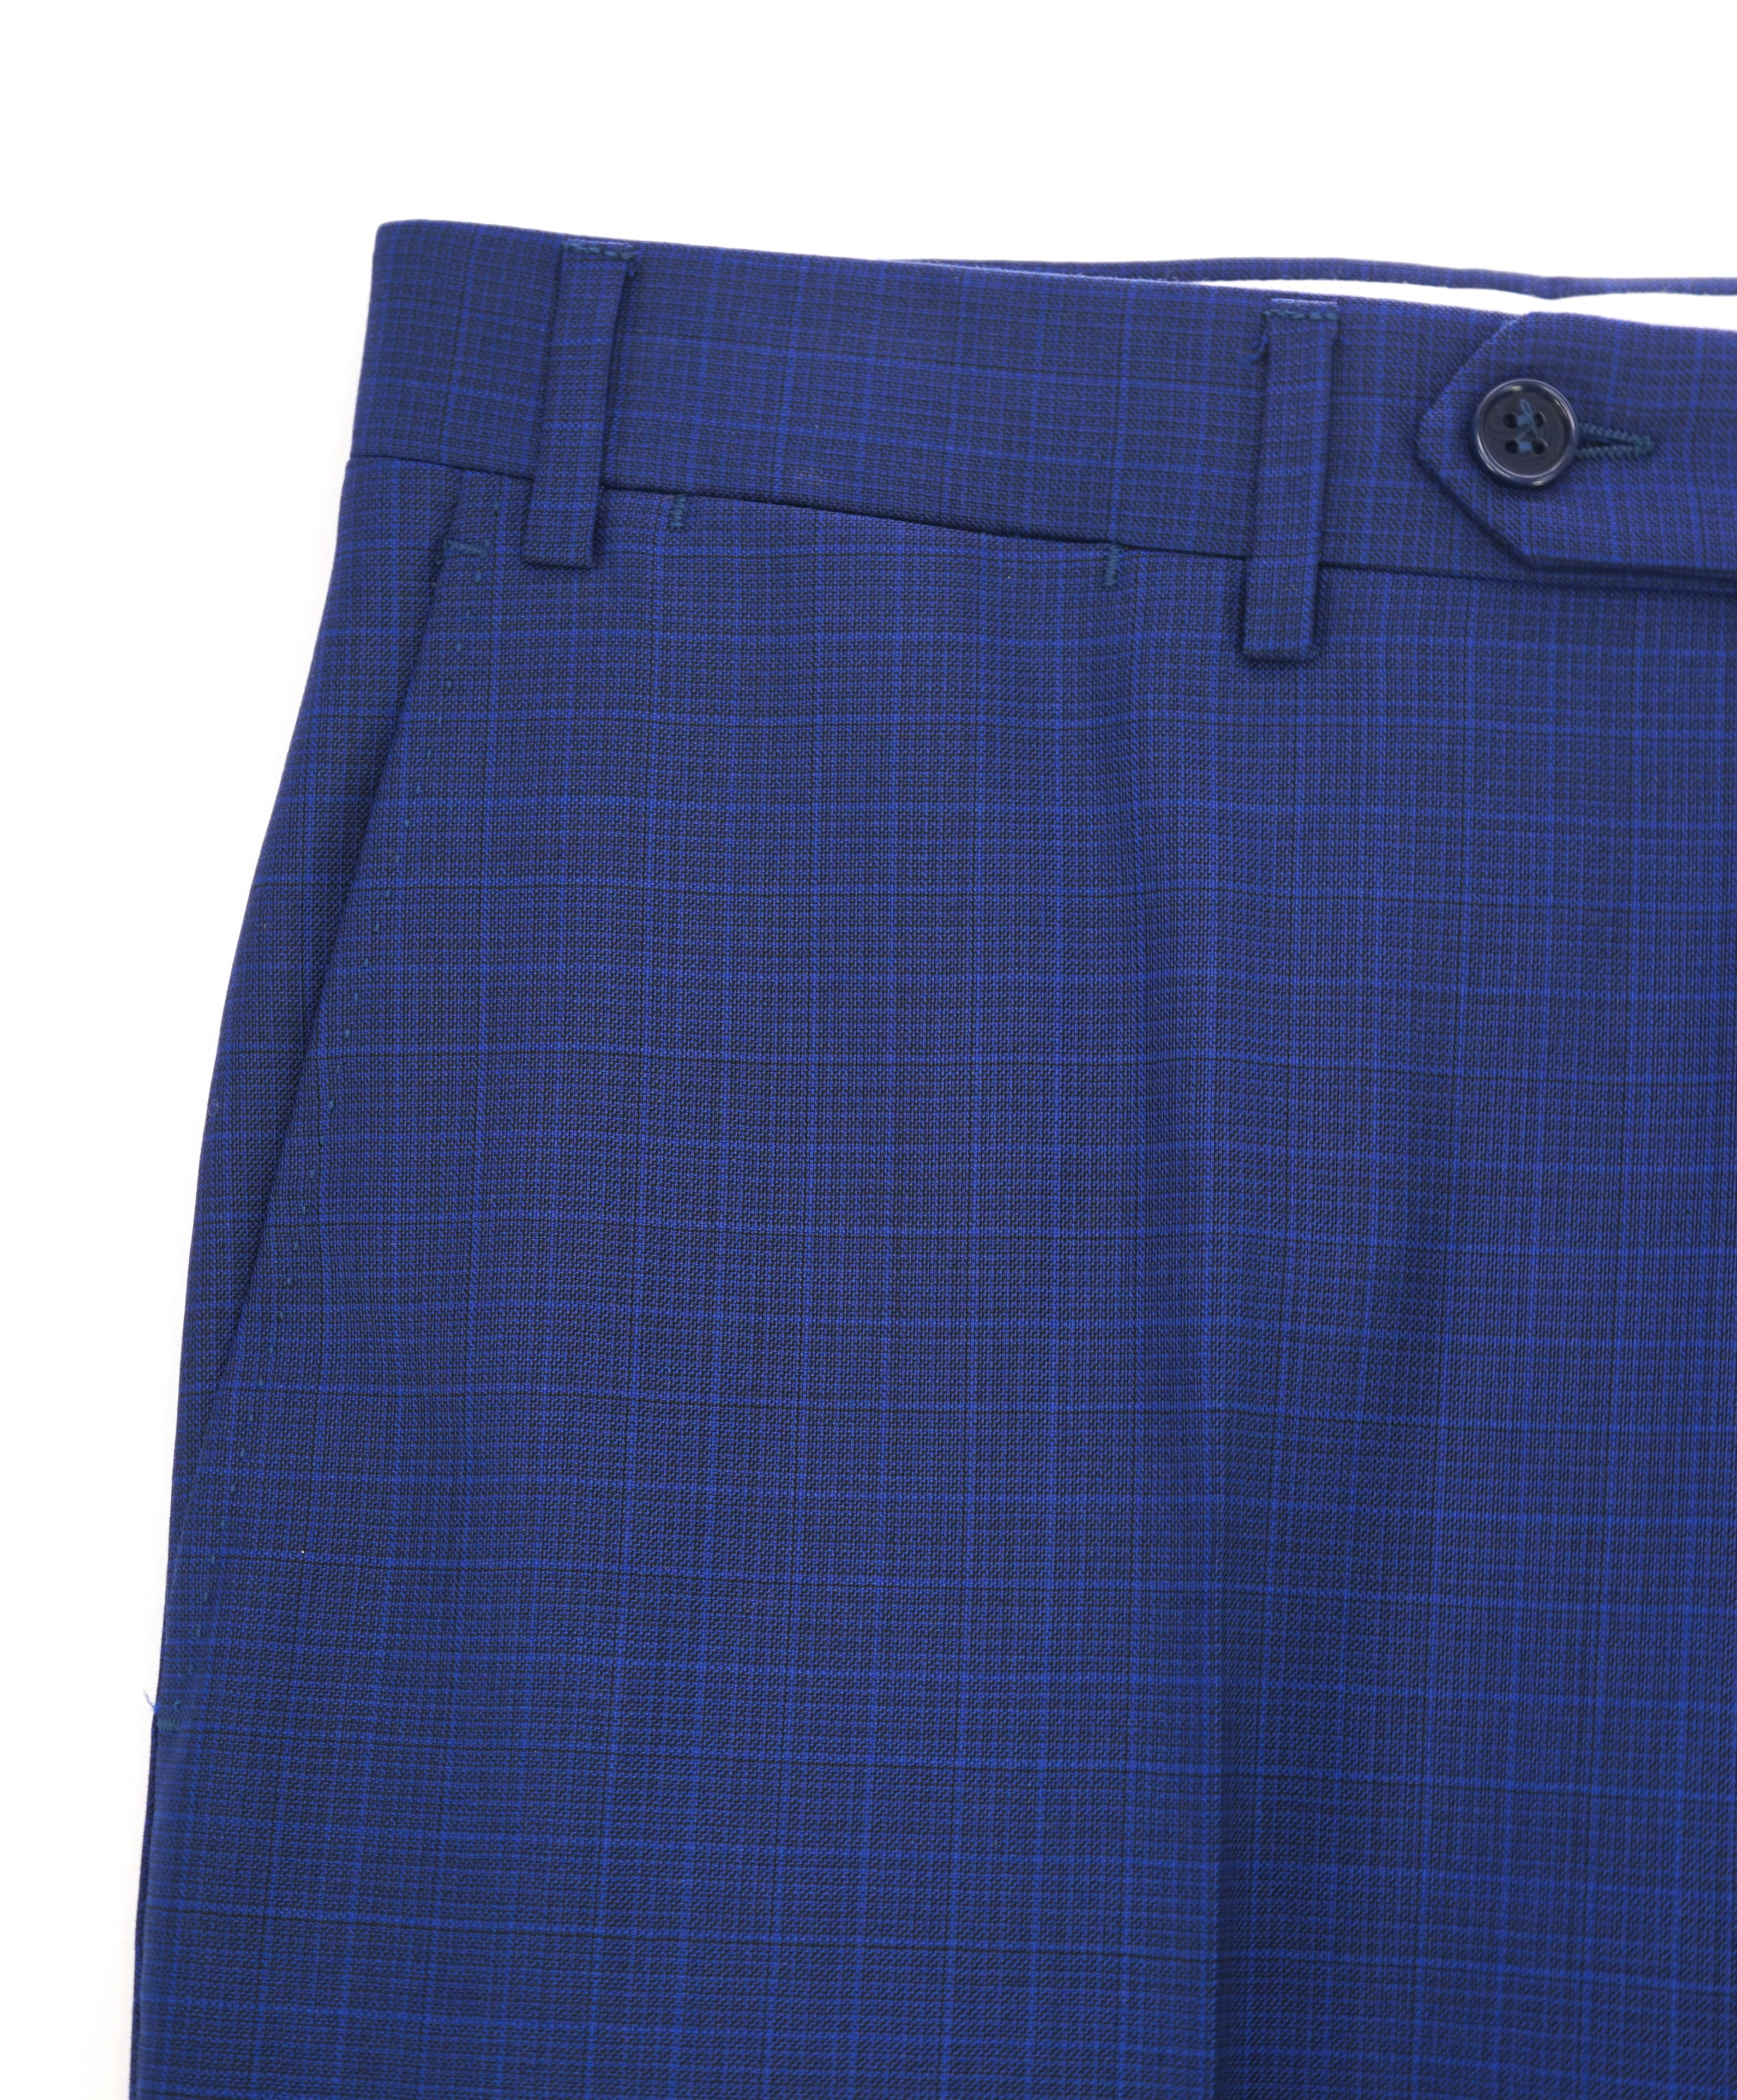 CANALI - Bold Blue Micro Check Plaid Flat Front Dress Pants - 32W